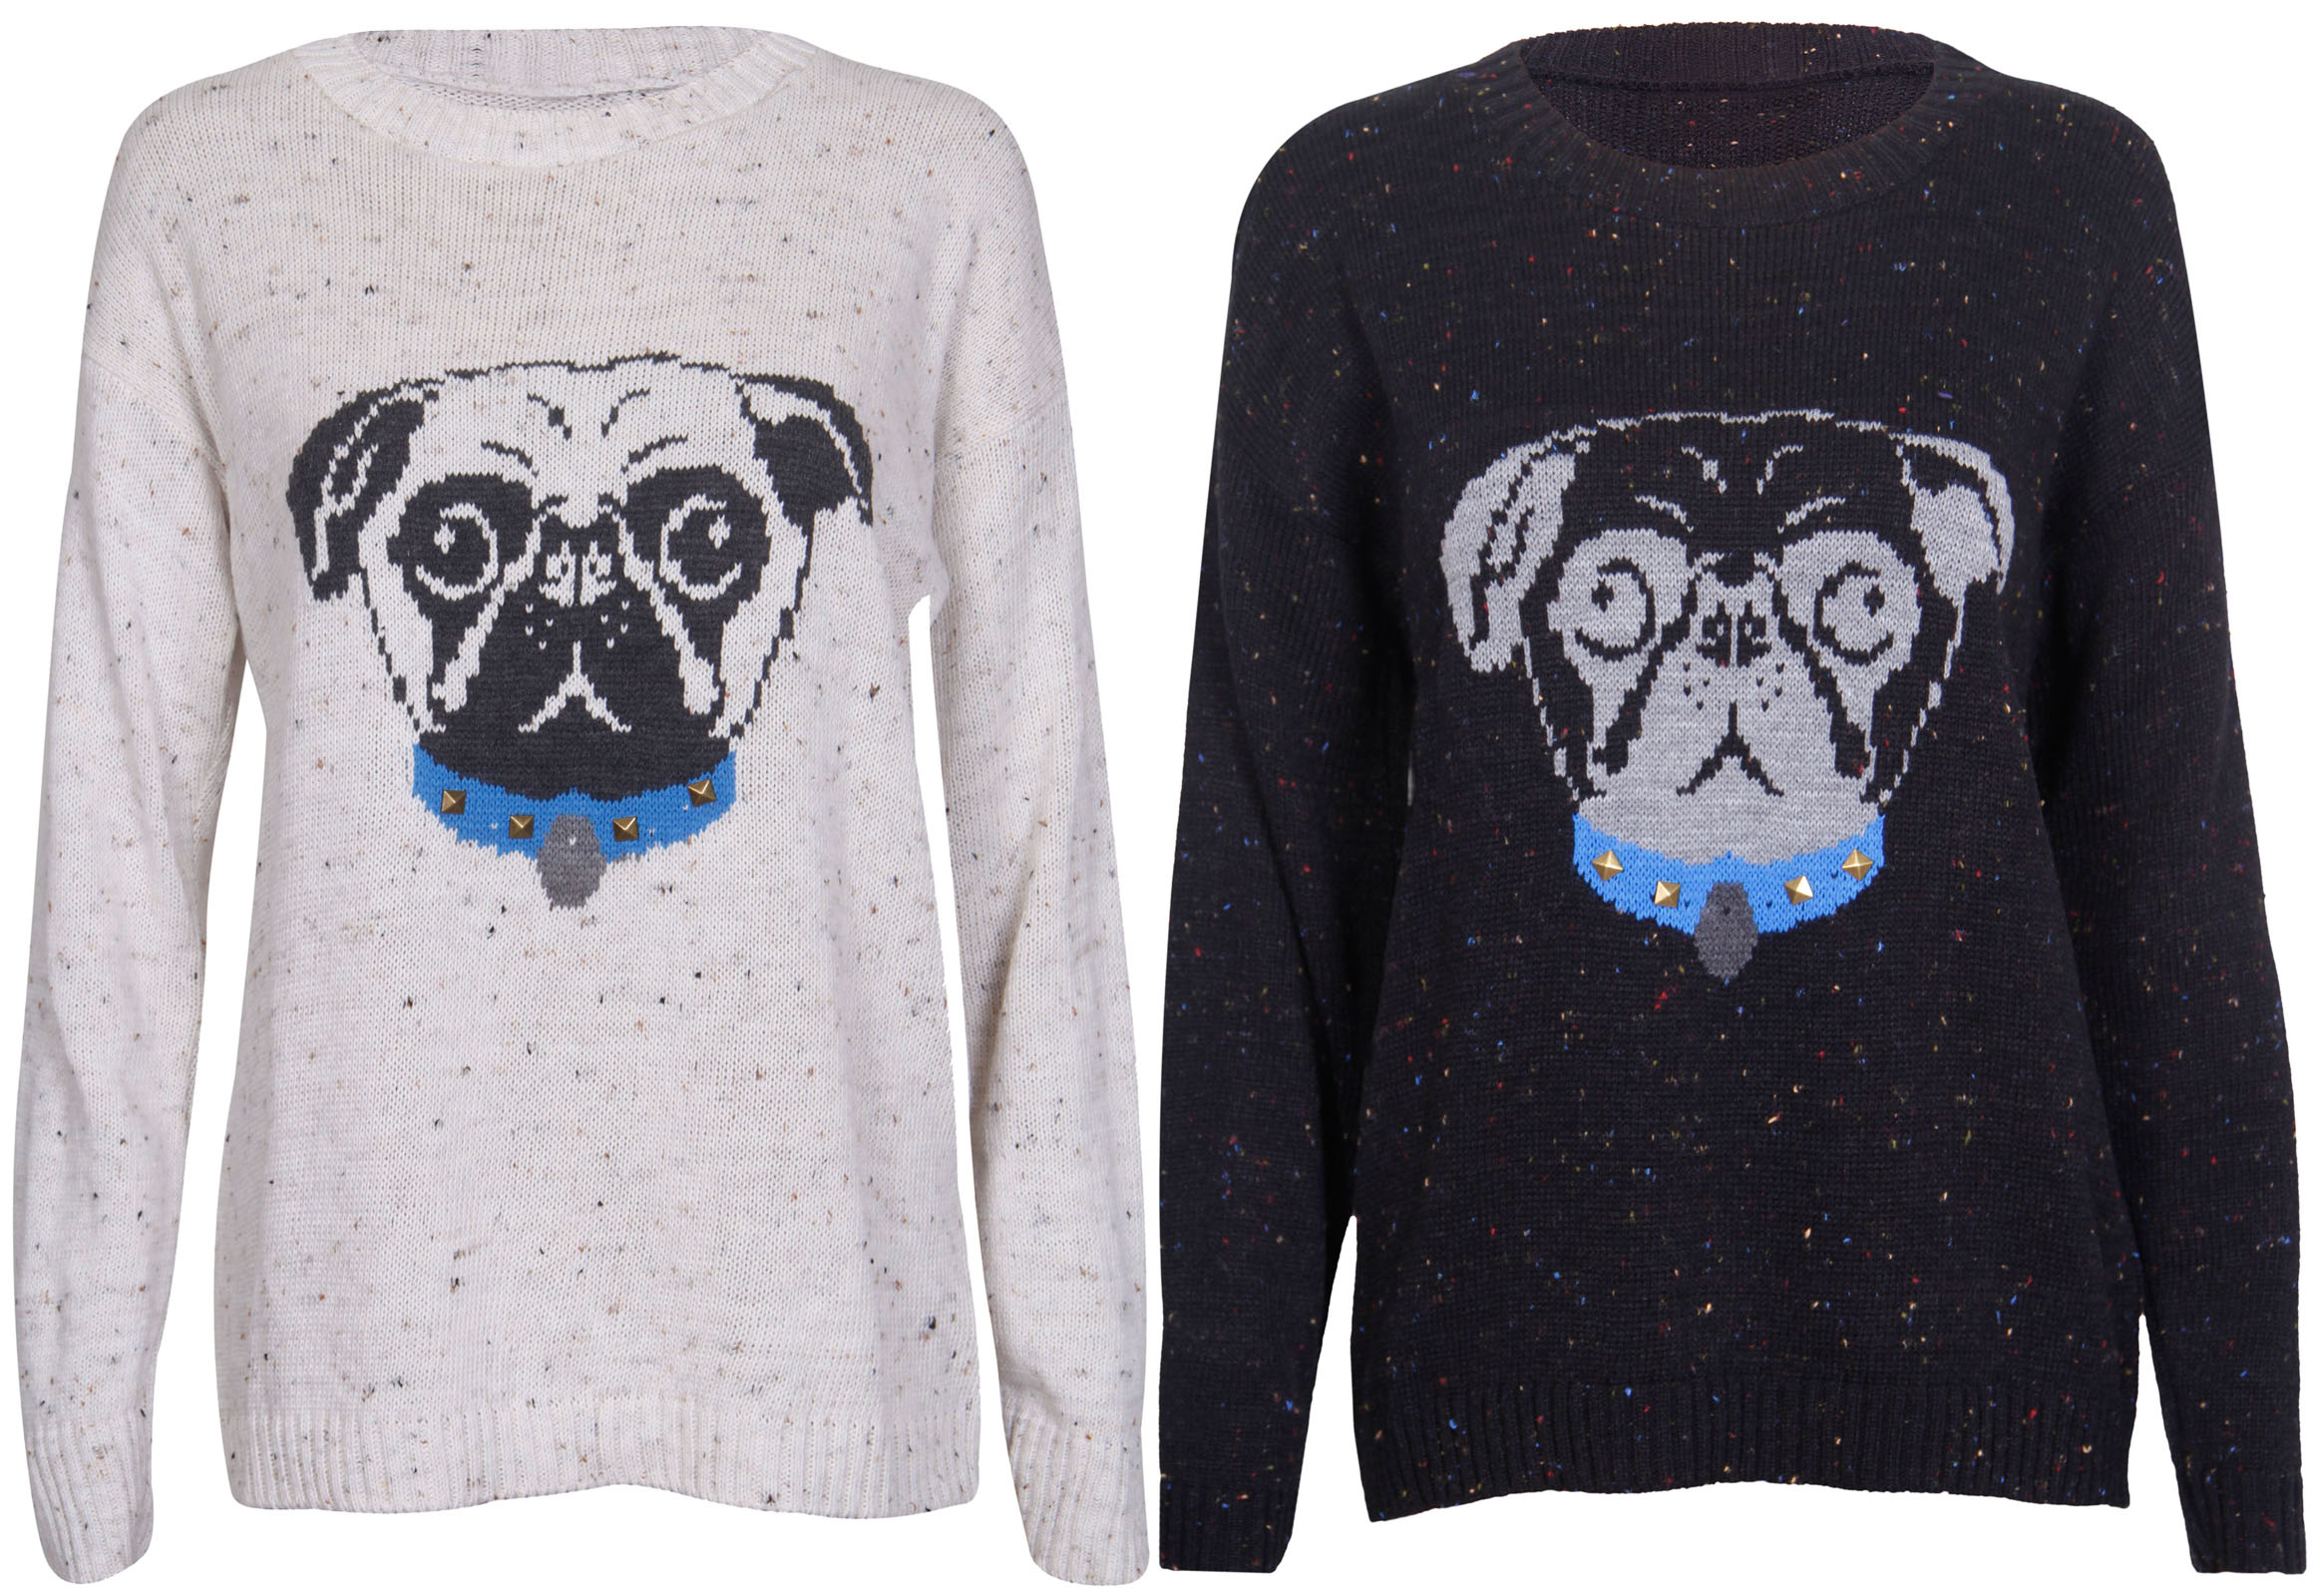 Knitting Pattern For Pug Jumper : Womens New Long Sleeve Pug Dog Print Knitted Stretch Sweater Studded Jumper T...